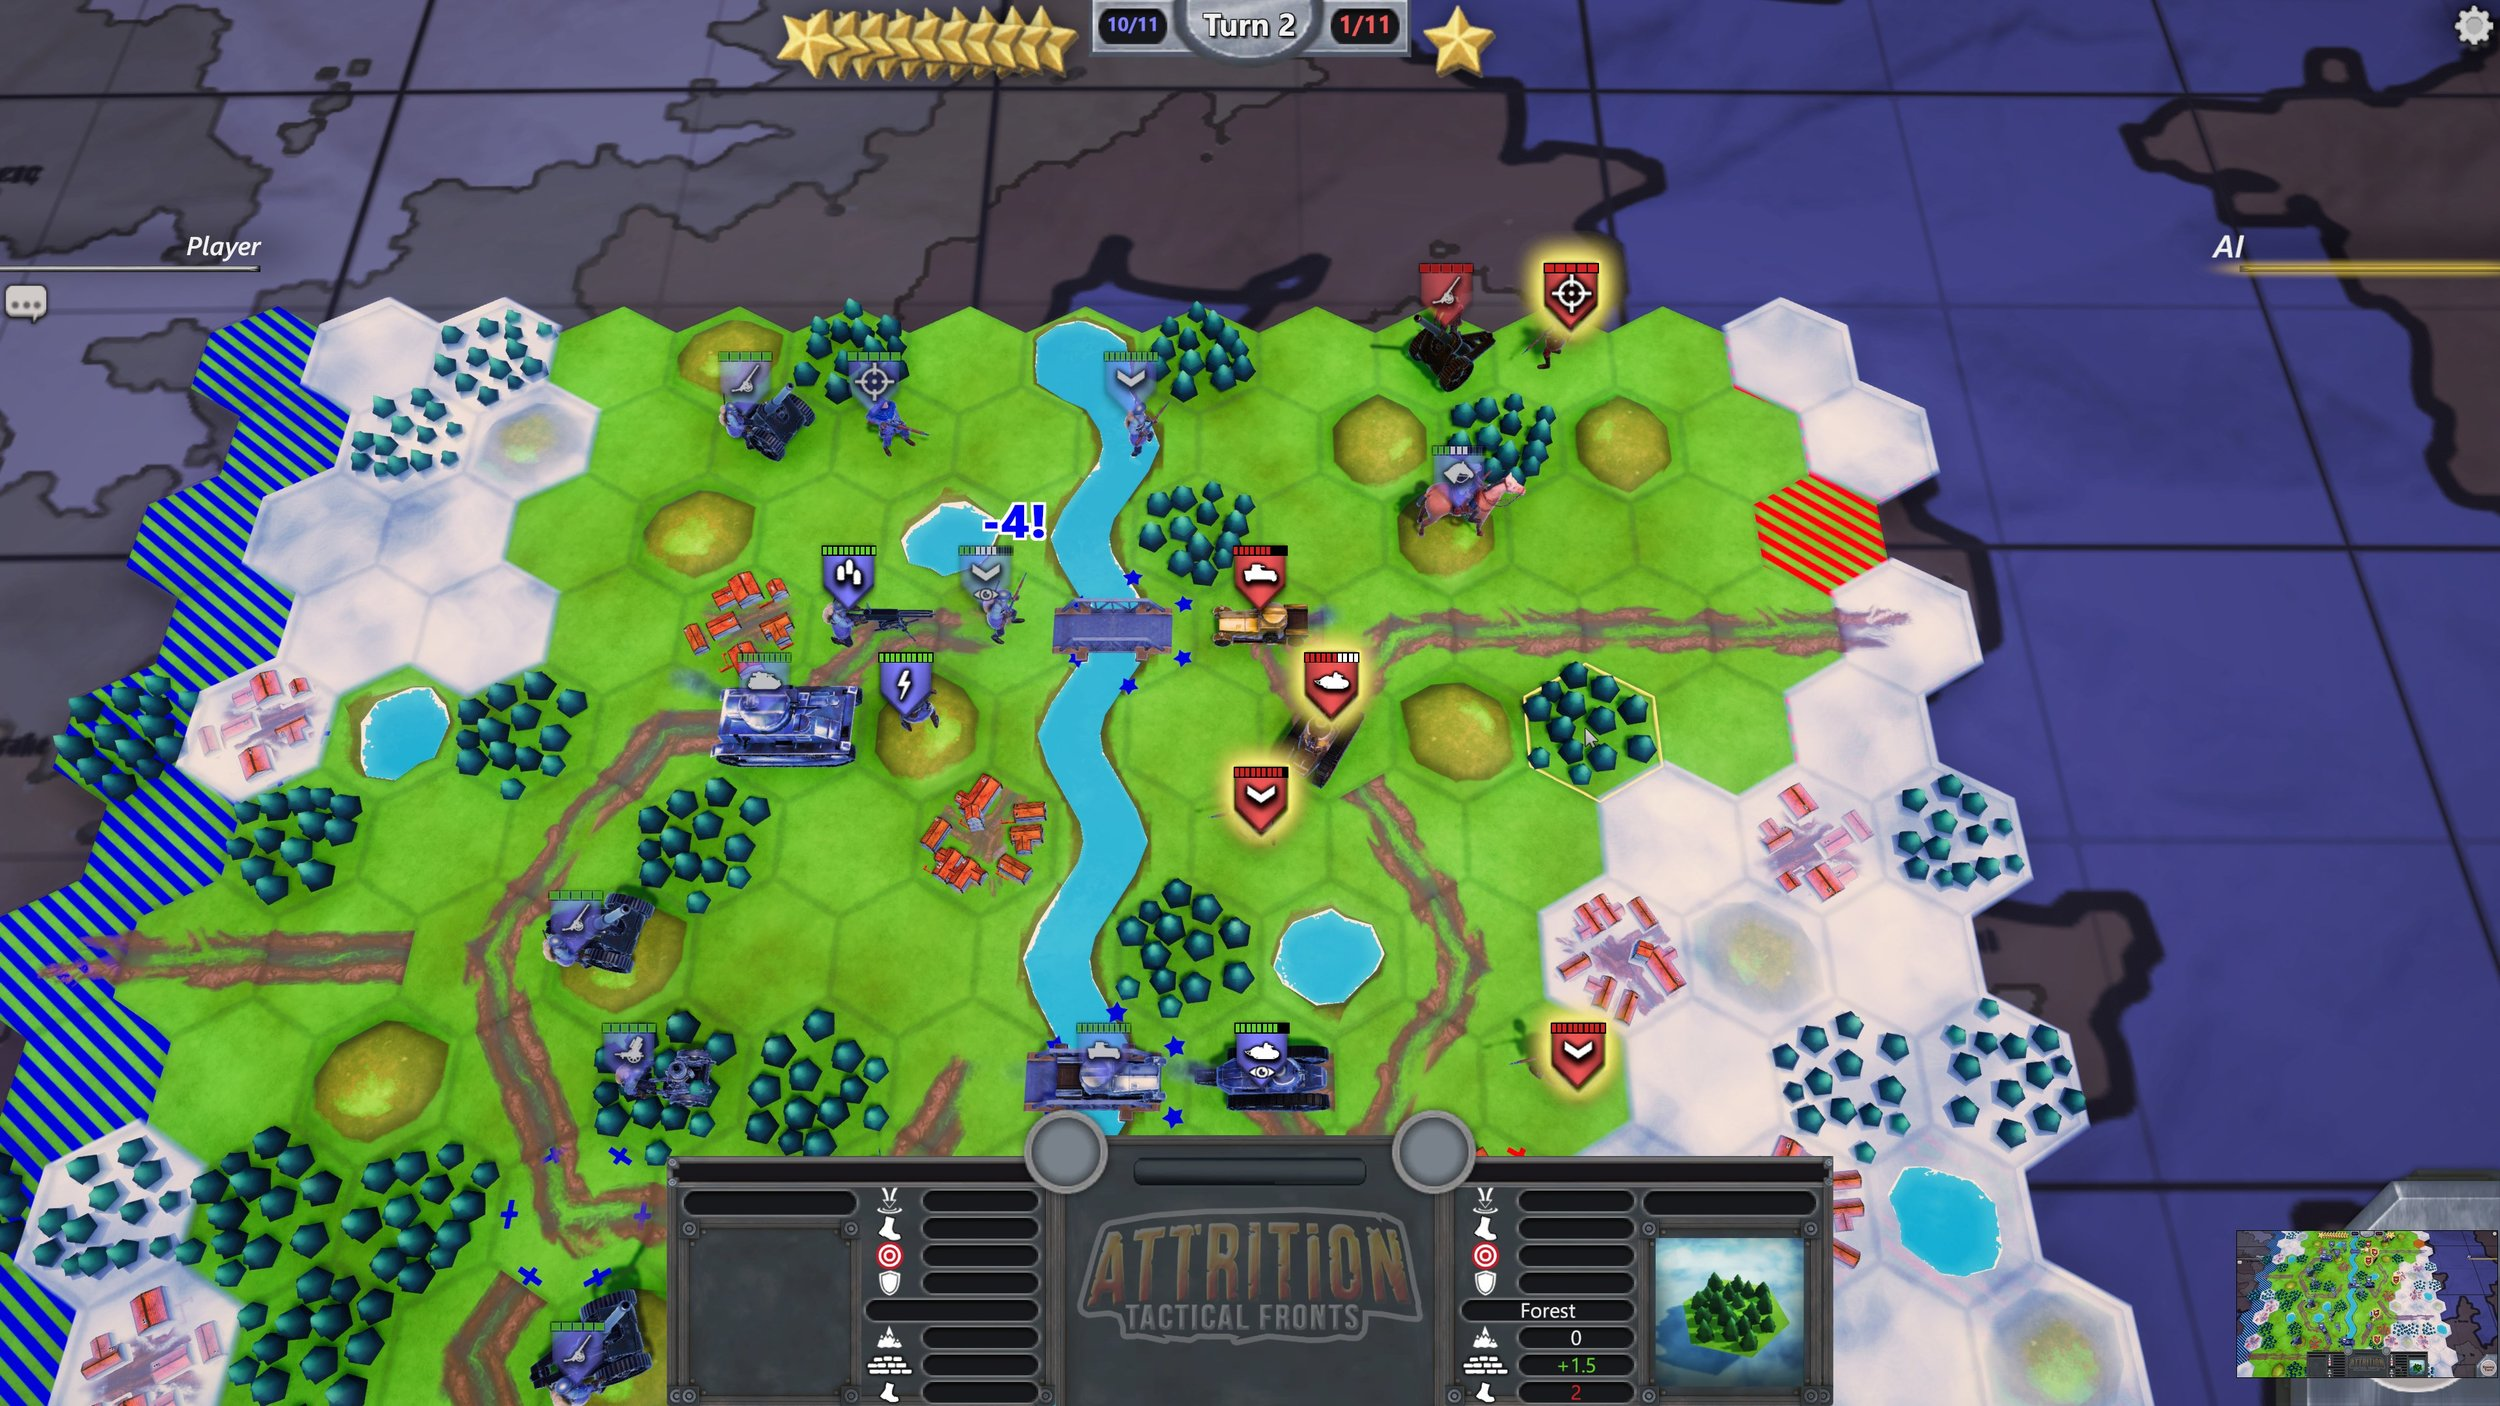 Attrition: Tactical Fronts is out now on Steam